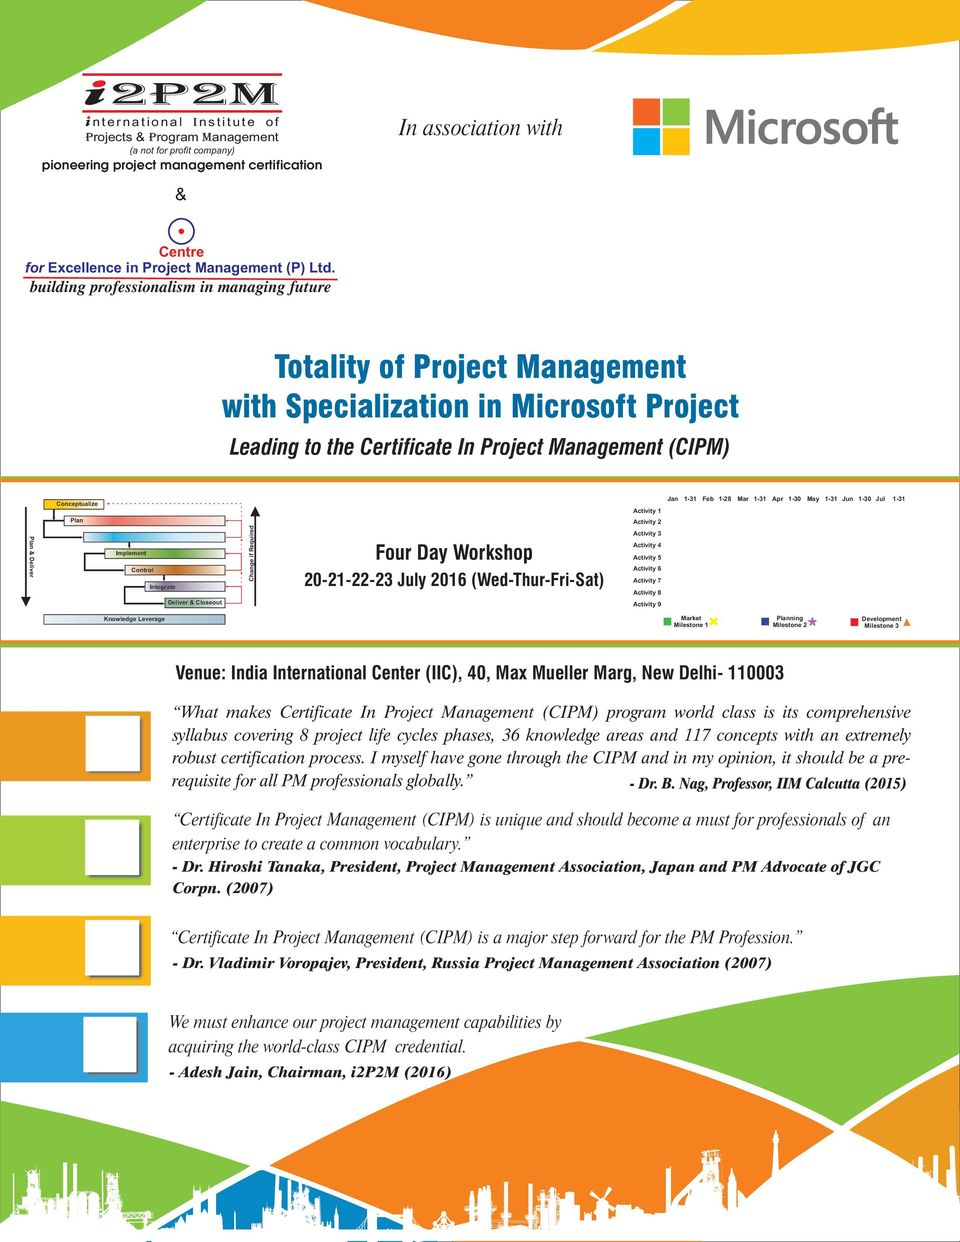 Totality of Project Management with Specialization in